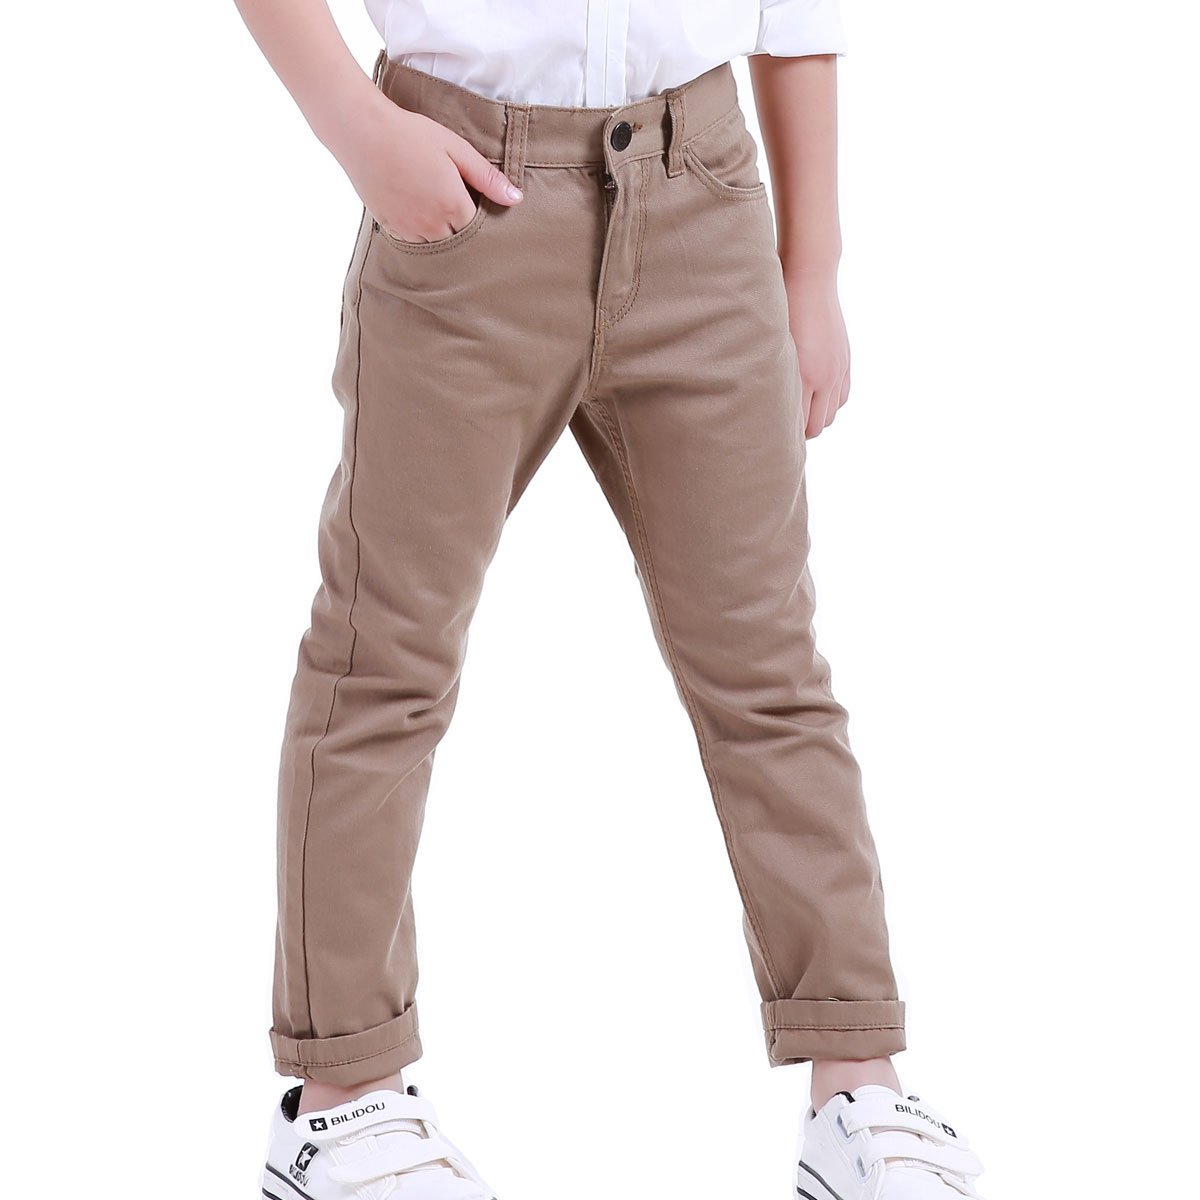 NABER Kids Boys Casual Khaki Chino Pull-On Straight Trousers Pants Size 12-13 Y